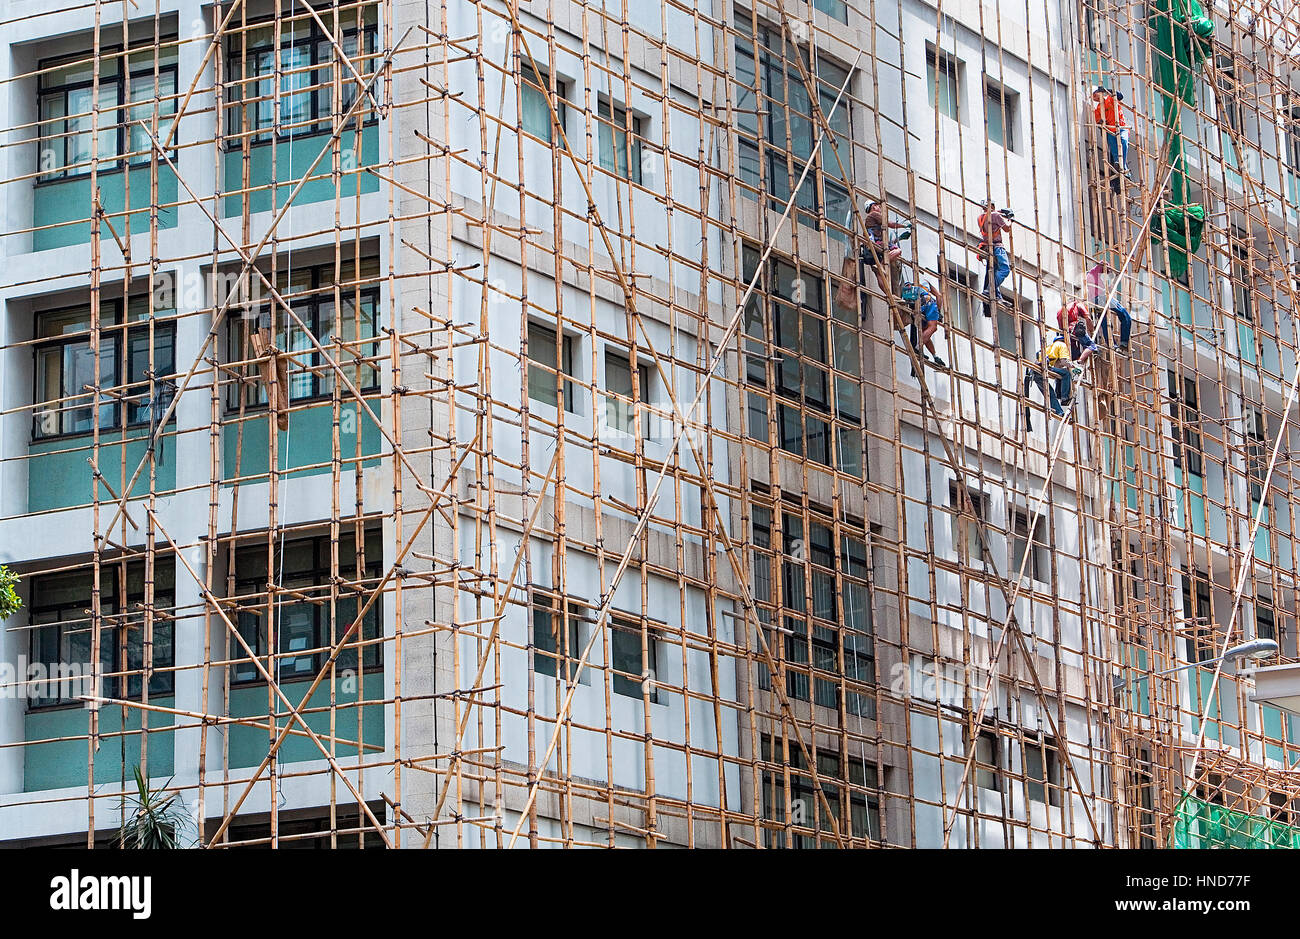 At work, Construction workers in Bamboo Scaffolding,Hong Kong, China - Stock Image